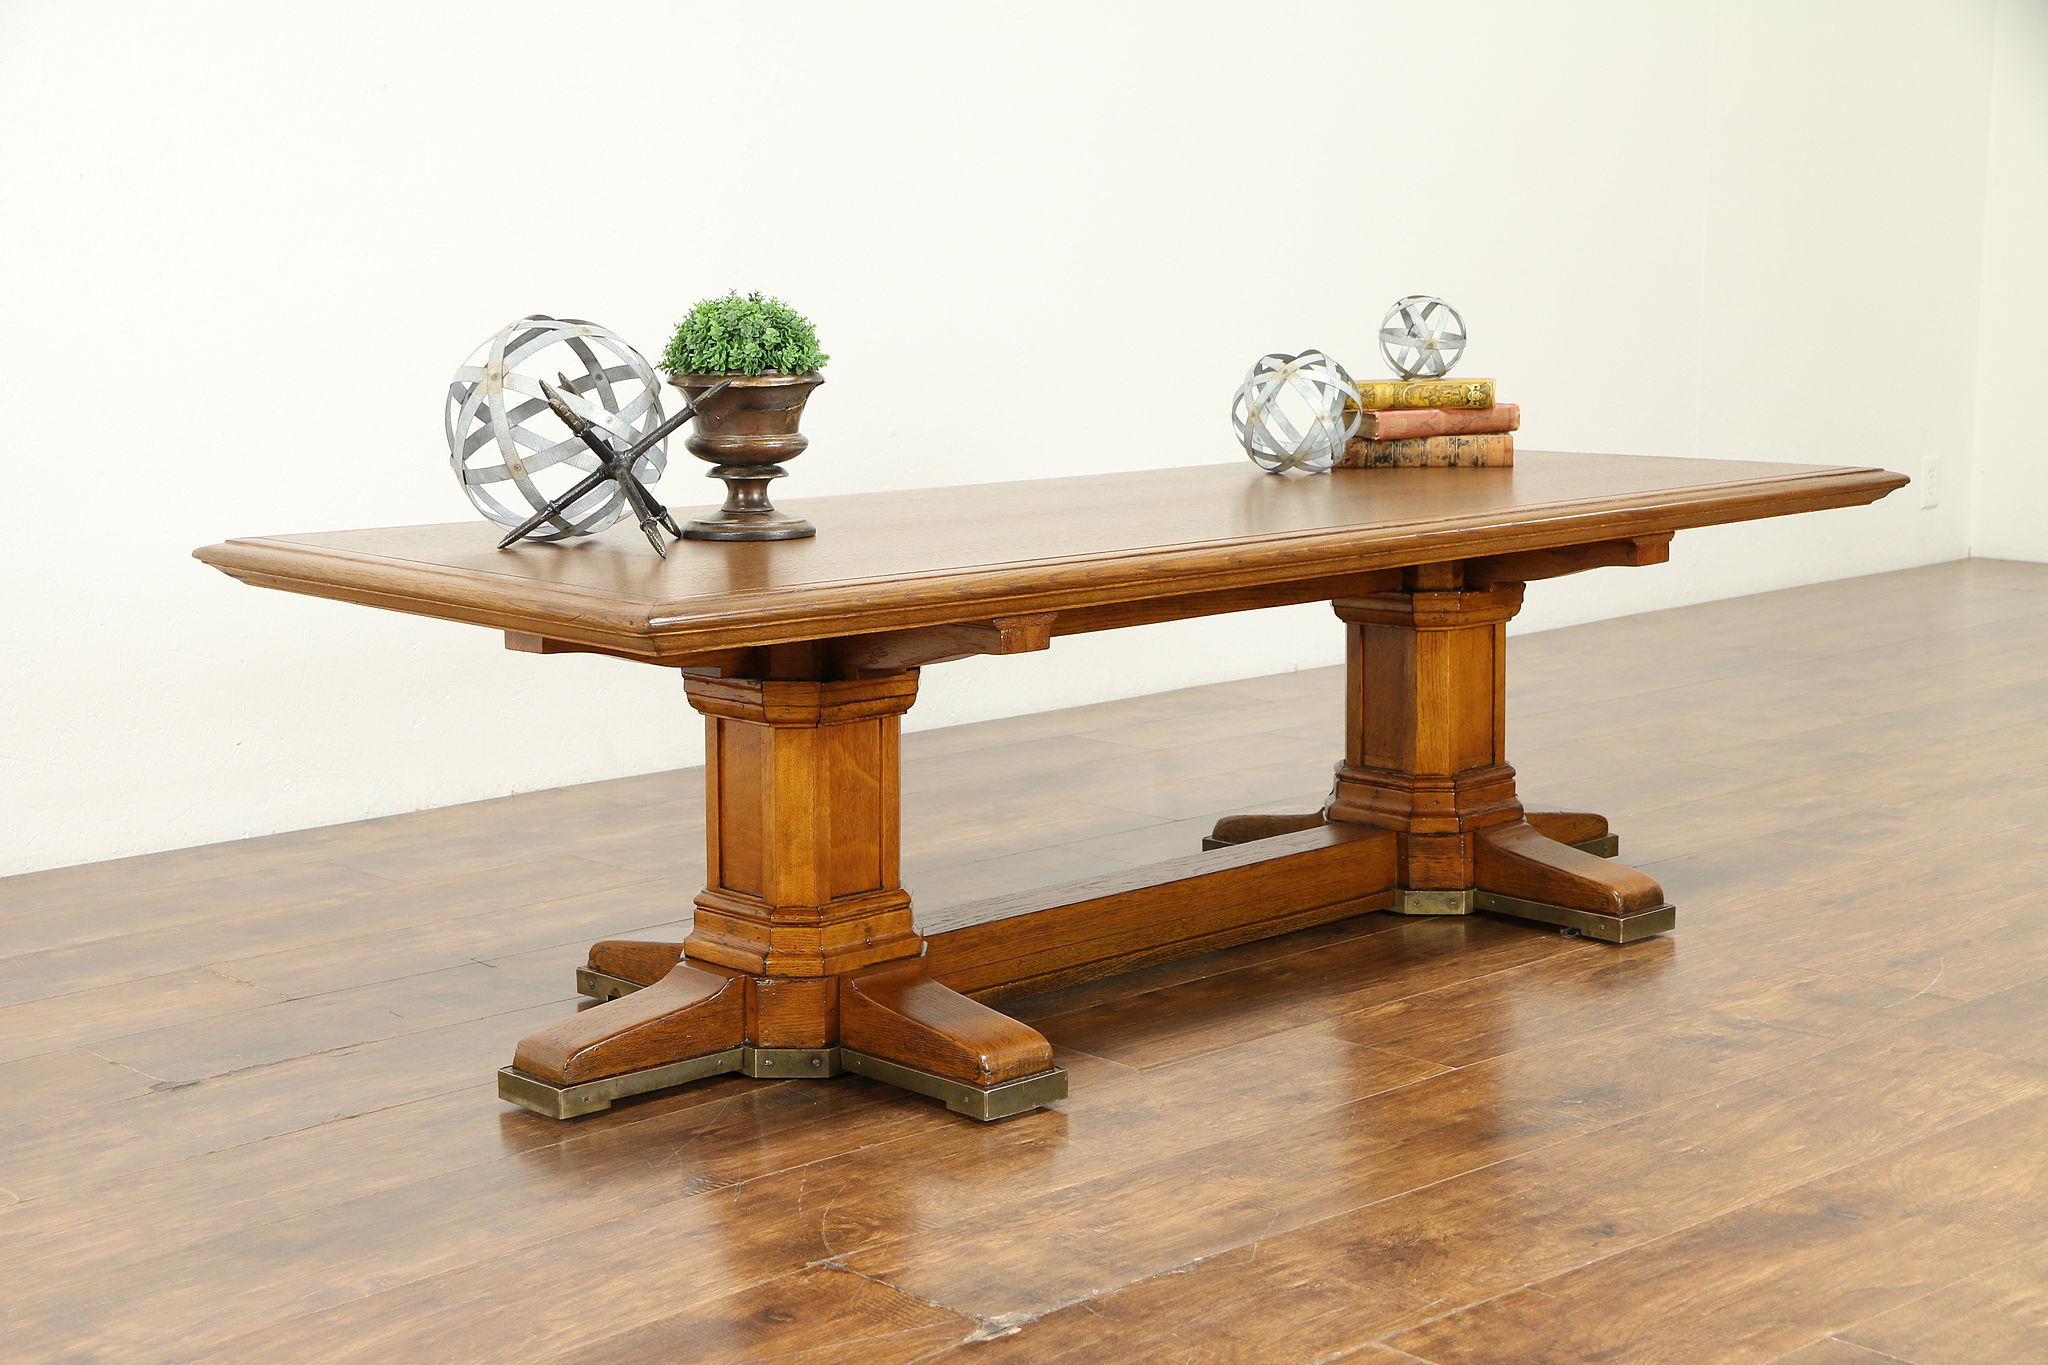 Picture of: Sold Classical Antique Oak Coffee Table From Bank Table Bronze Base 31149 Harp Gallery Antiques Furniture